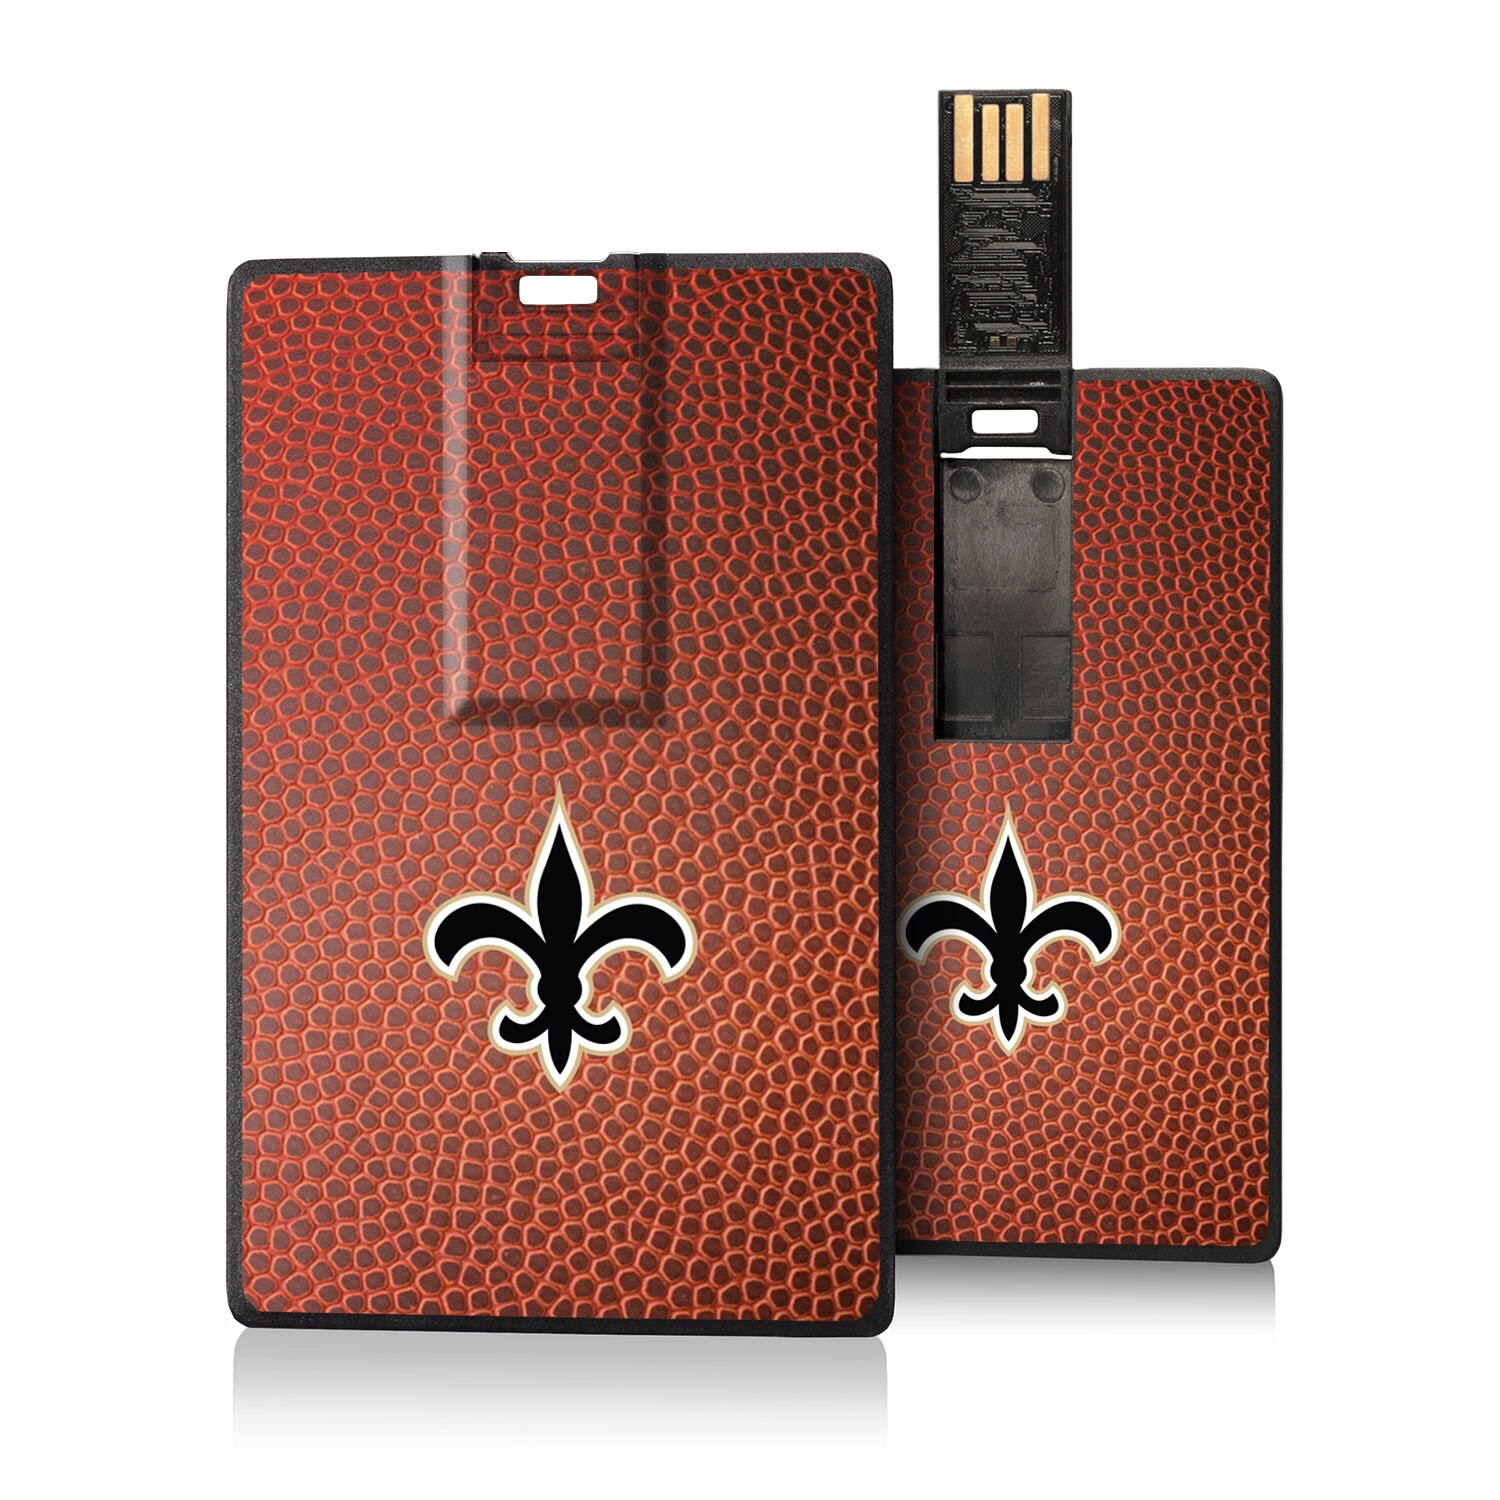 New Orleans Saints Football Design Credit Card USB Drive